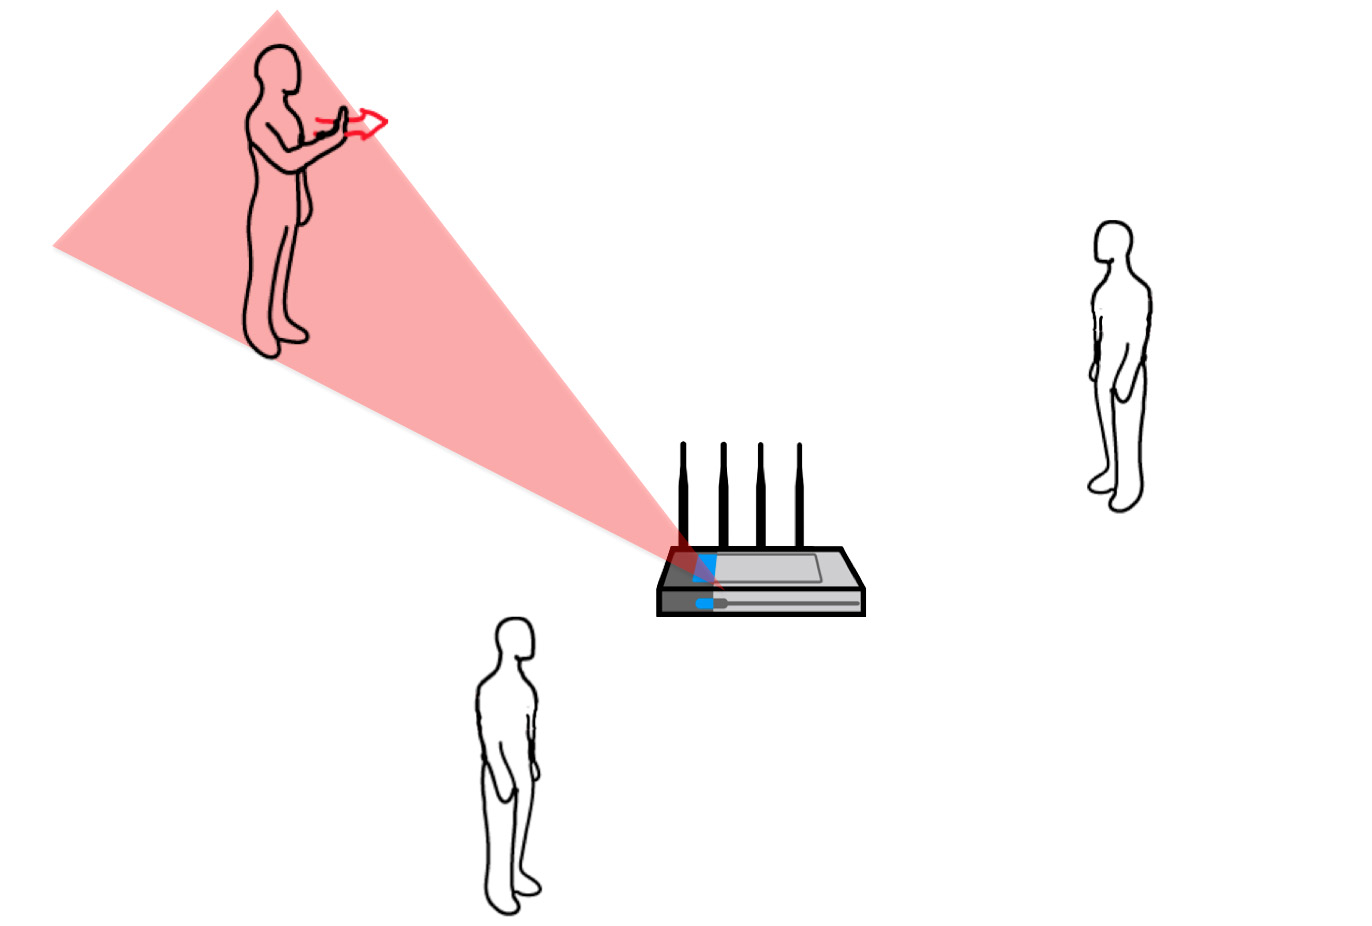 Wi-Fi signals enable gesture recognition throughout entire home | UW